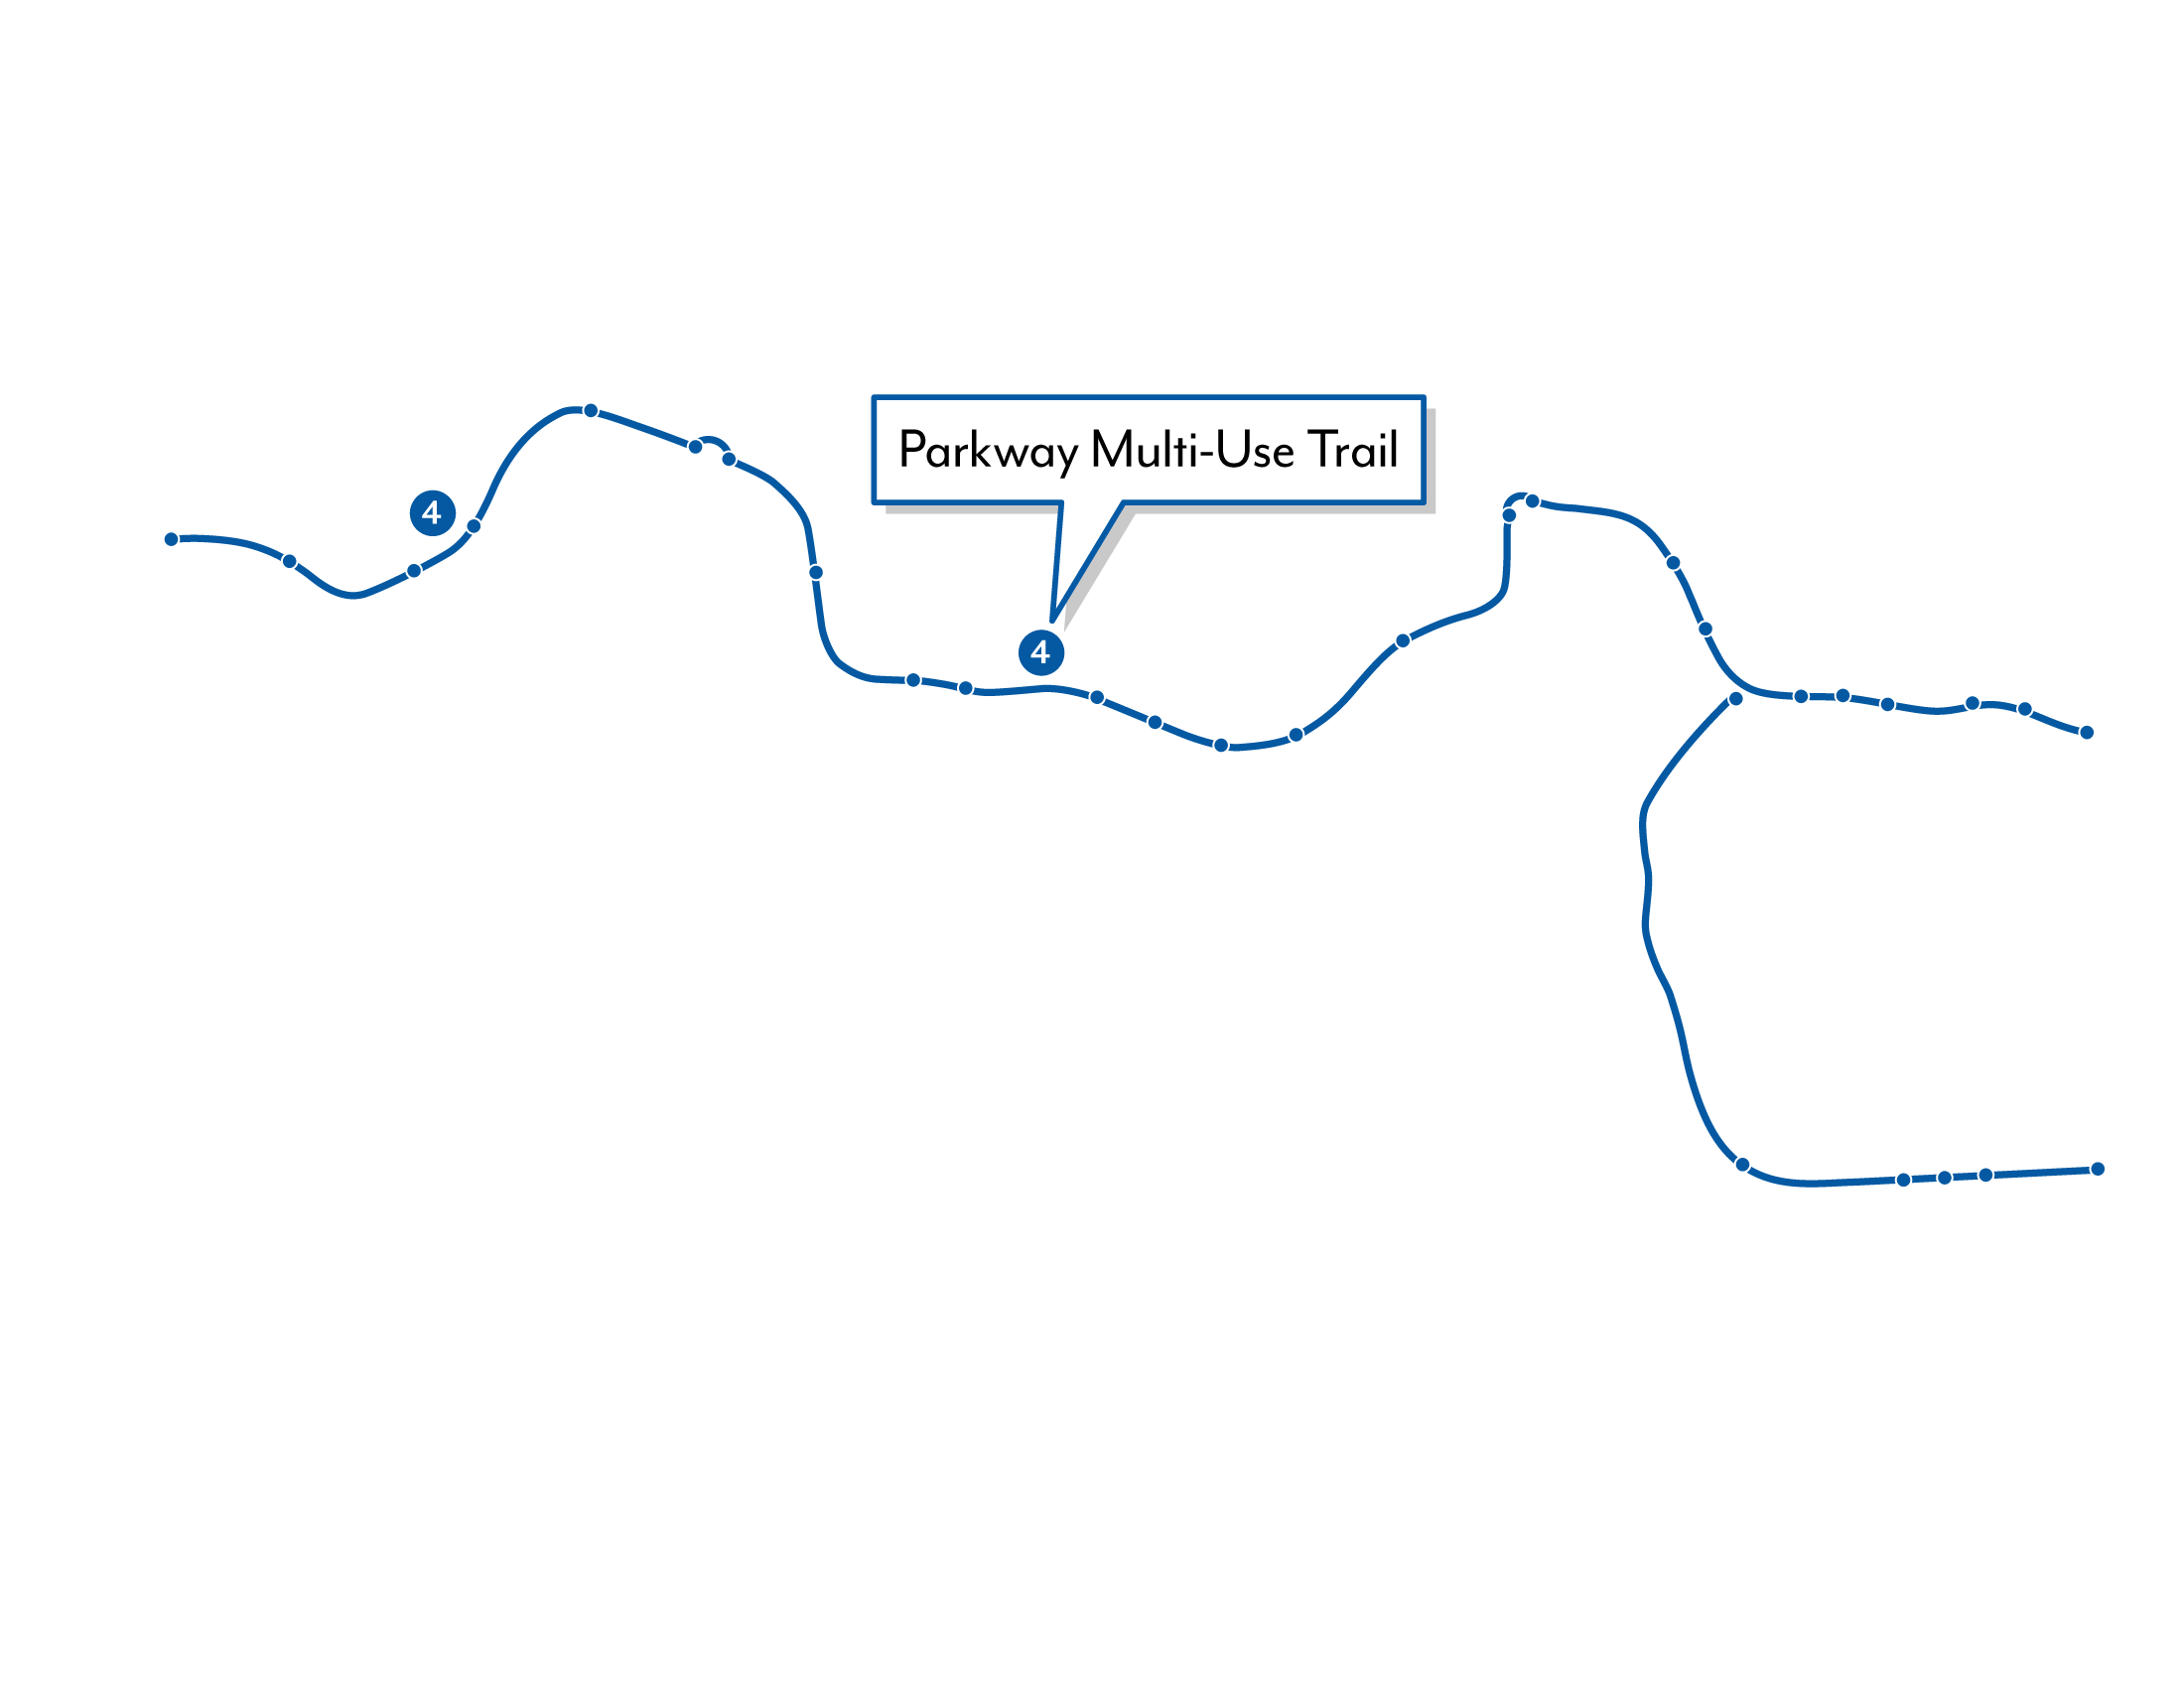 Shearwater graphic depicting the Parkway Multi-Use Trail